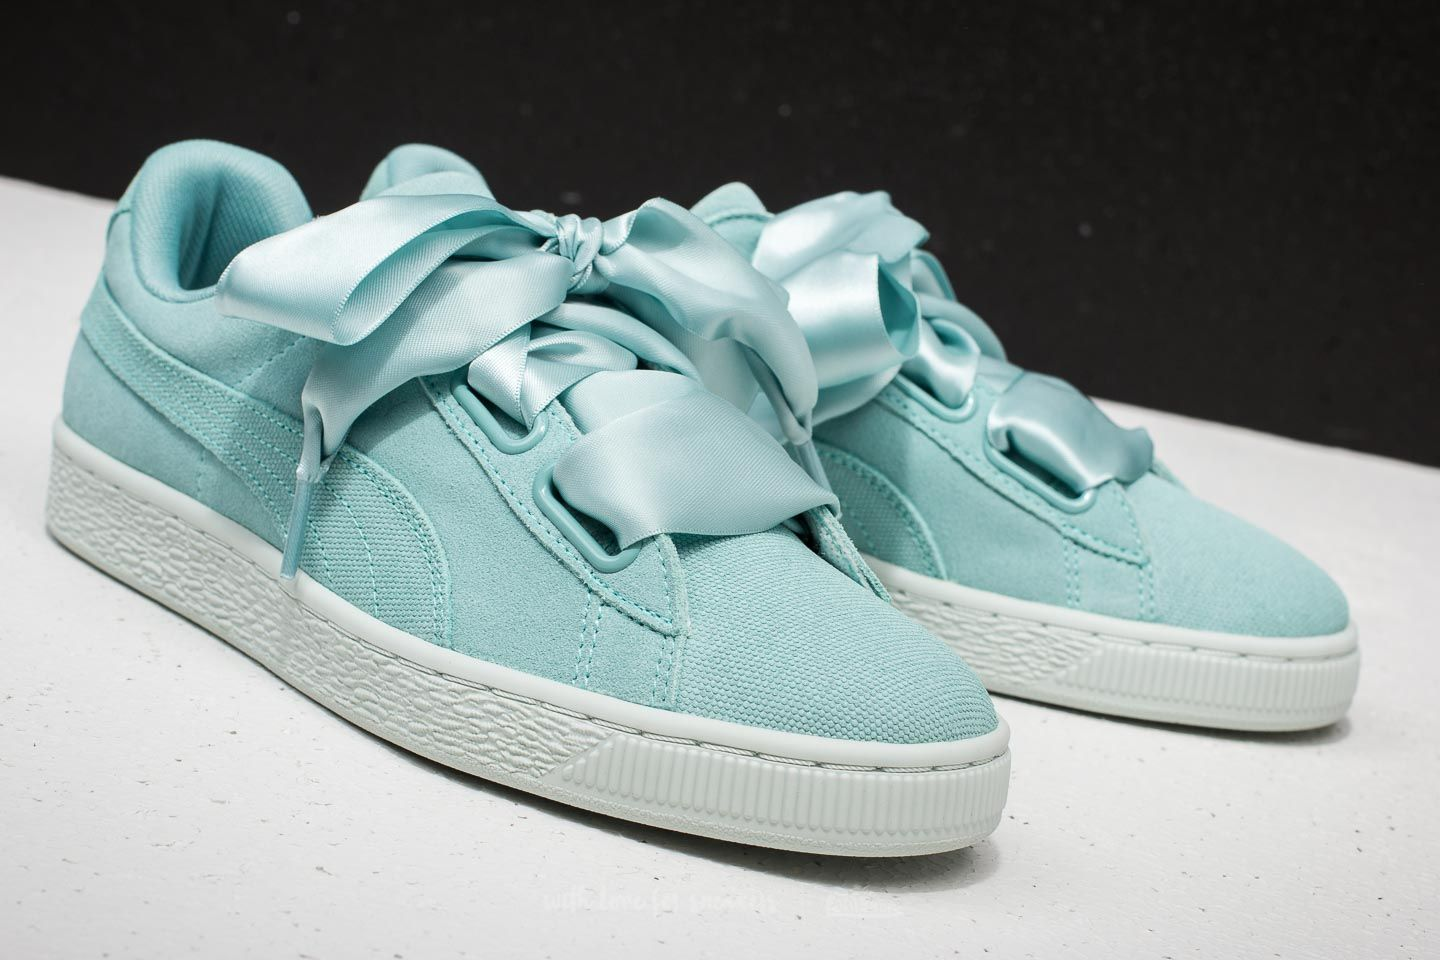 new arrival 9817f f6631 Puma Suede Heart Pebble Wn's Aquifer/ Blue Flower | Footshop